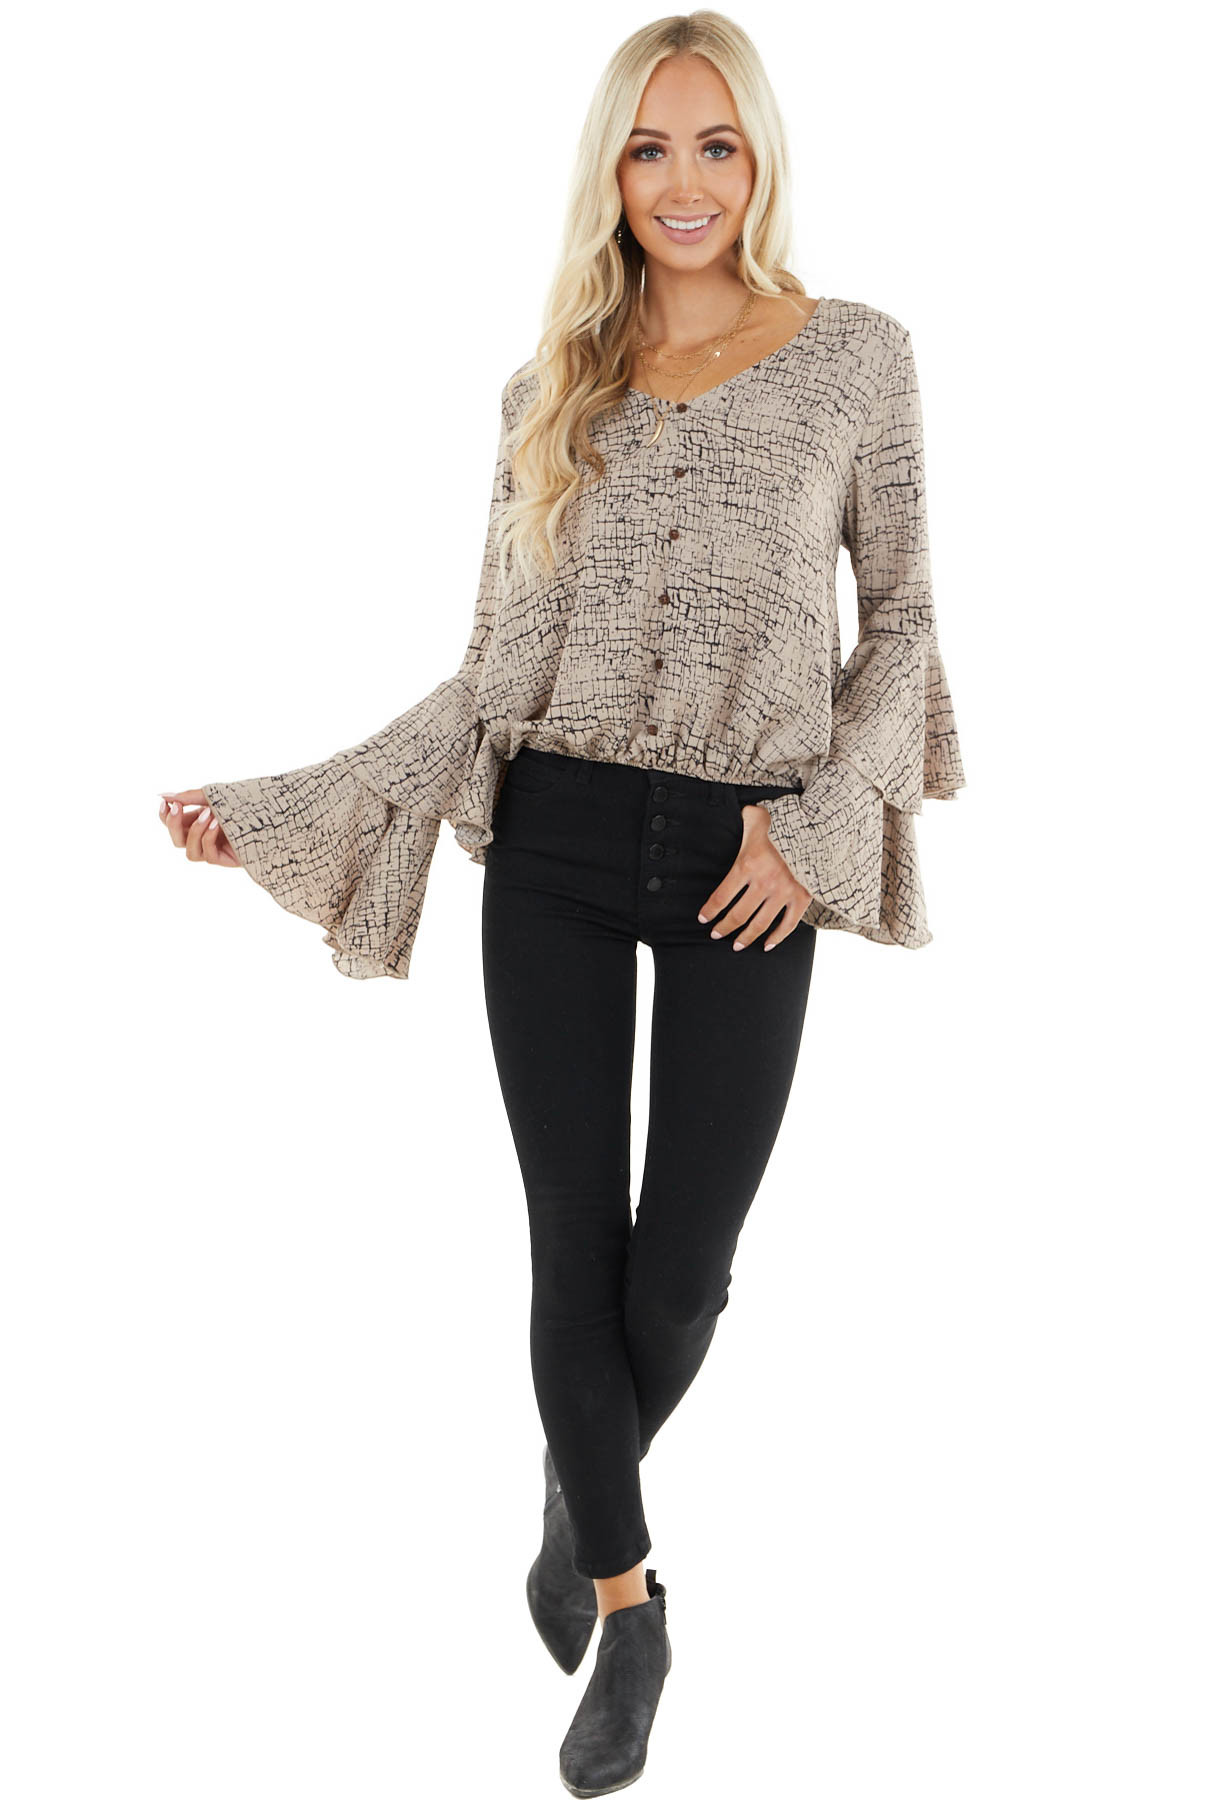 Latte Abstract Print Top with Tiered Flare Long Sleeves